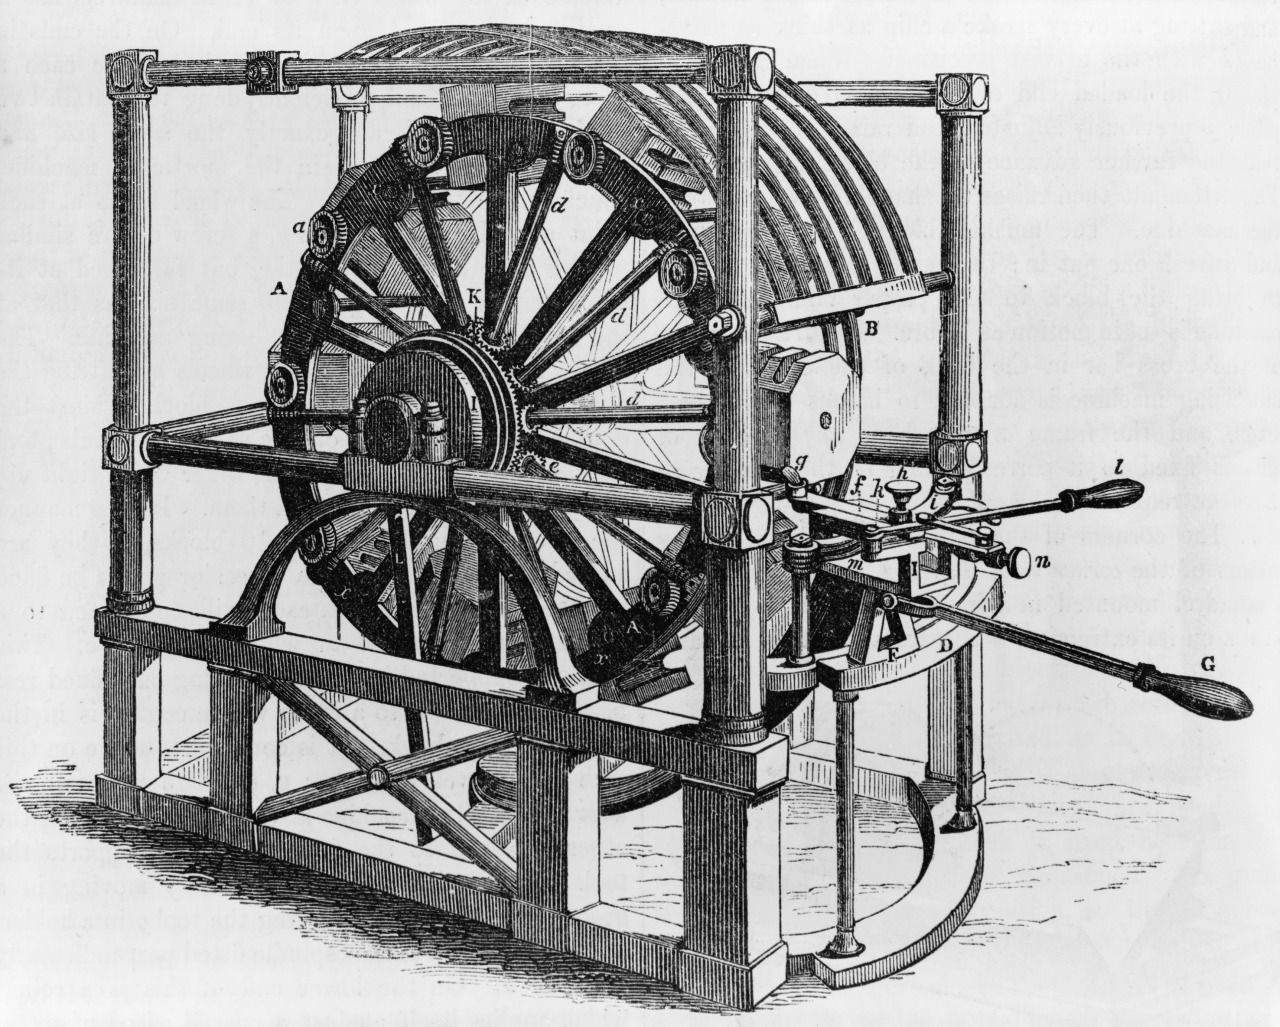 Block making machine that produced wooden blocks for block and tackle, primarily for the ship industry, 1854.